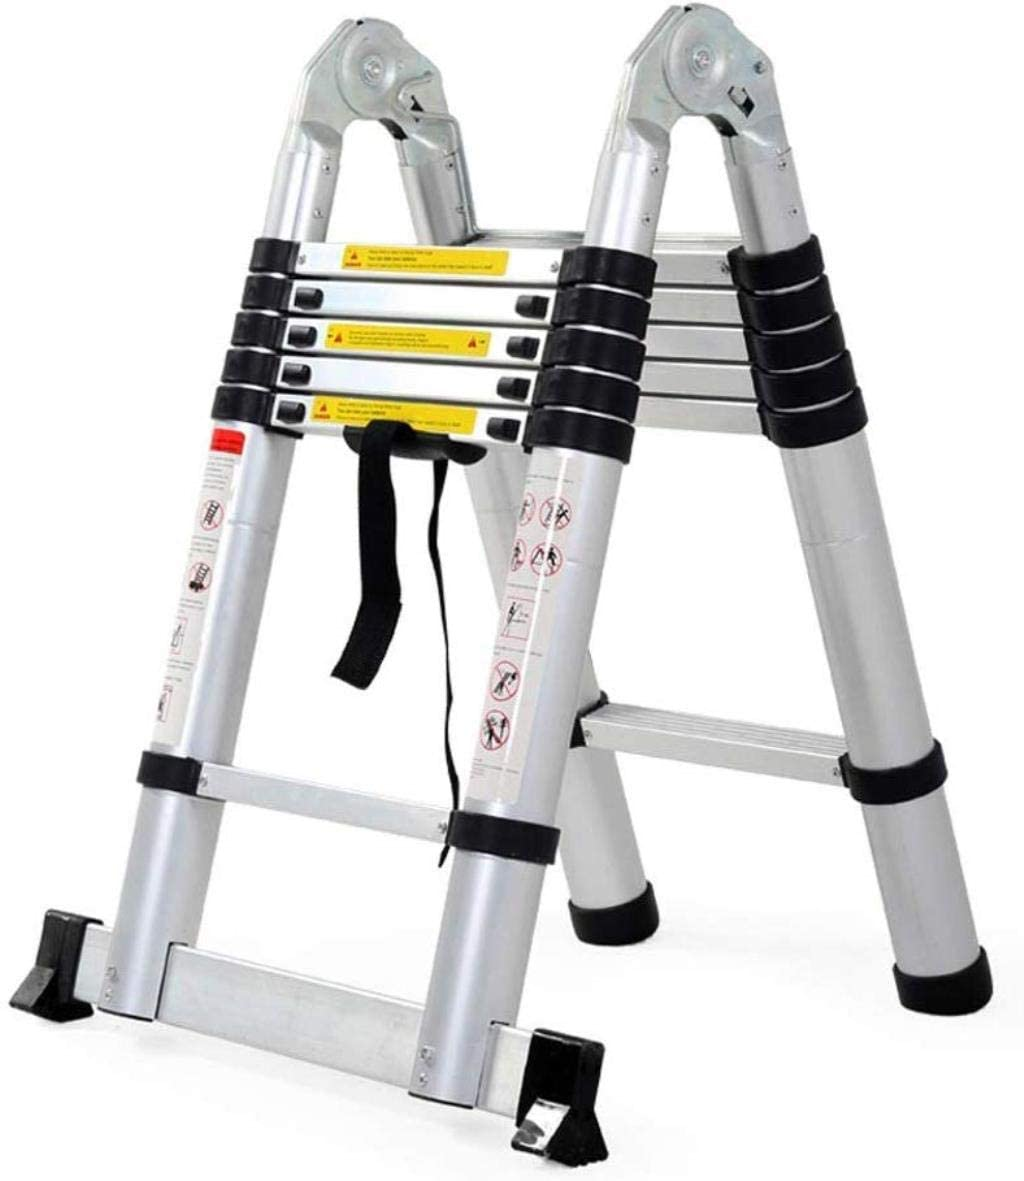 LADDERS 1.6+1.6M Folding Ladder Telescopic for Home and Kitchen Multi Purpose Portable Lightweight Extension Ladder Alu